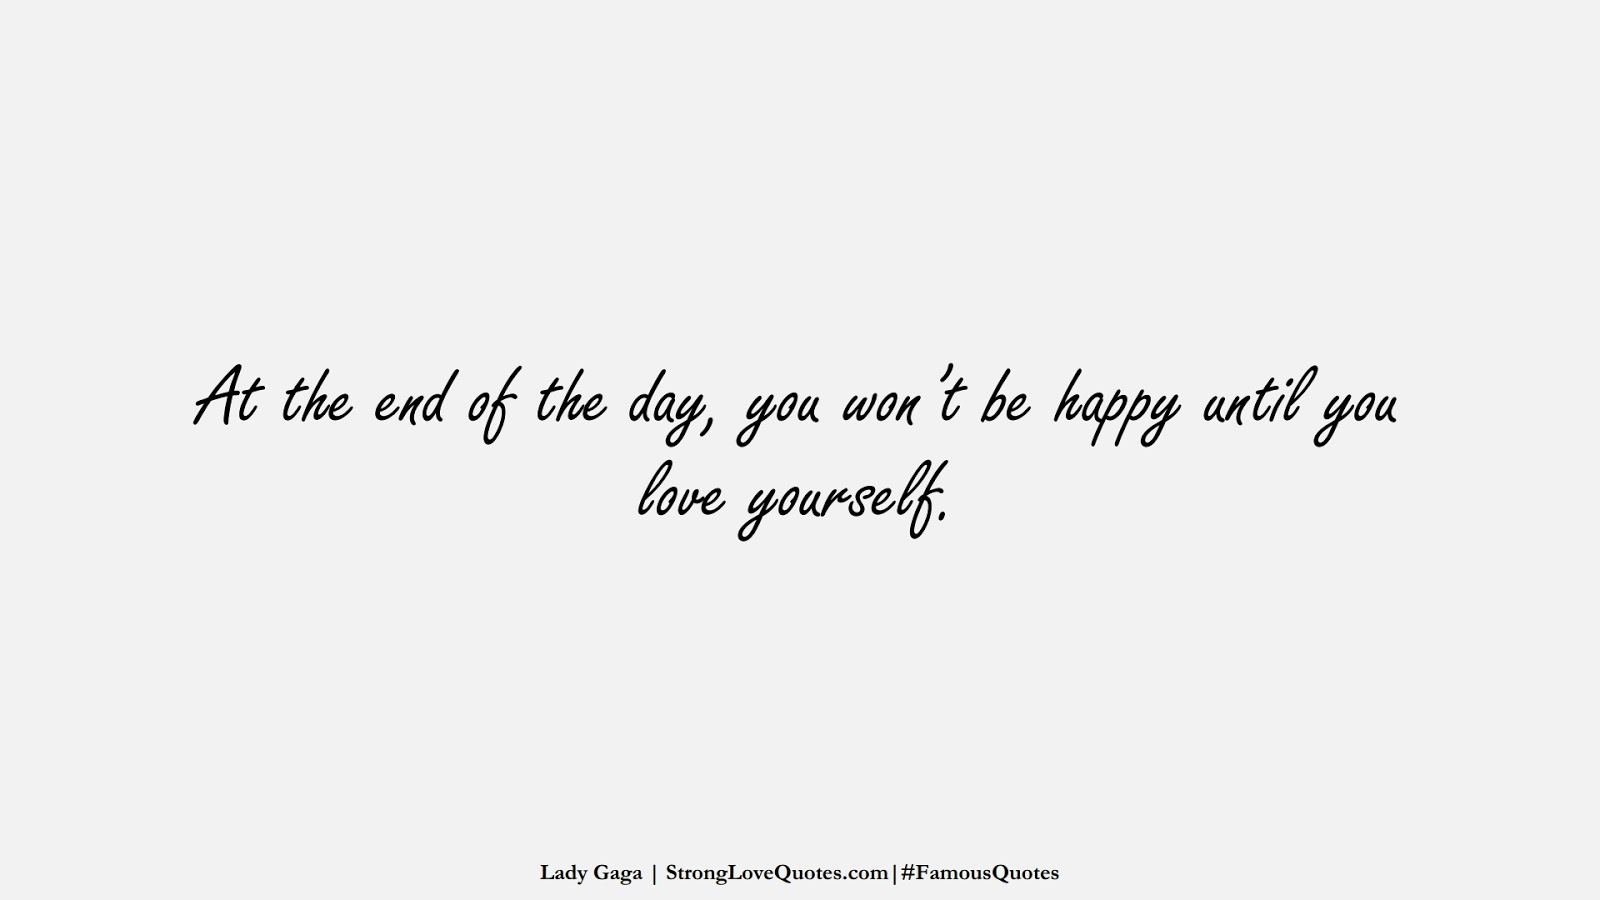 At the end of the day, you won't be happy until you love yourself. (Lady Gaga);  #FamousQuotes